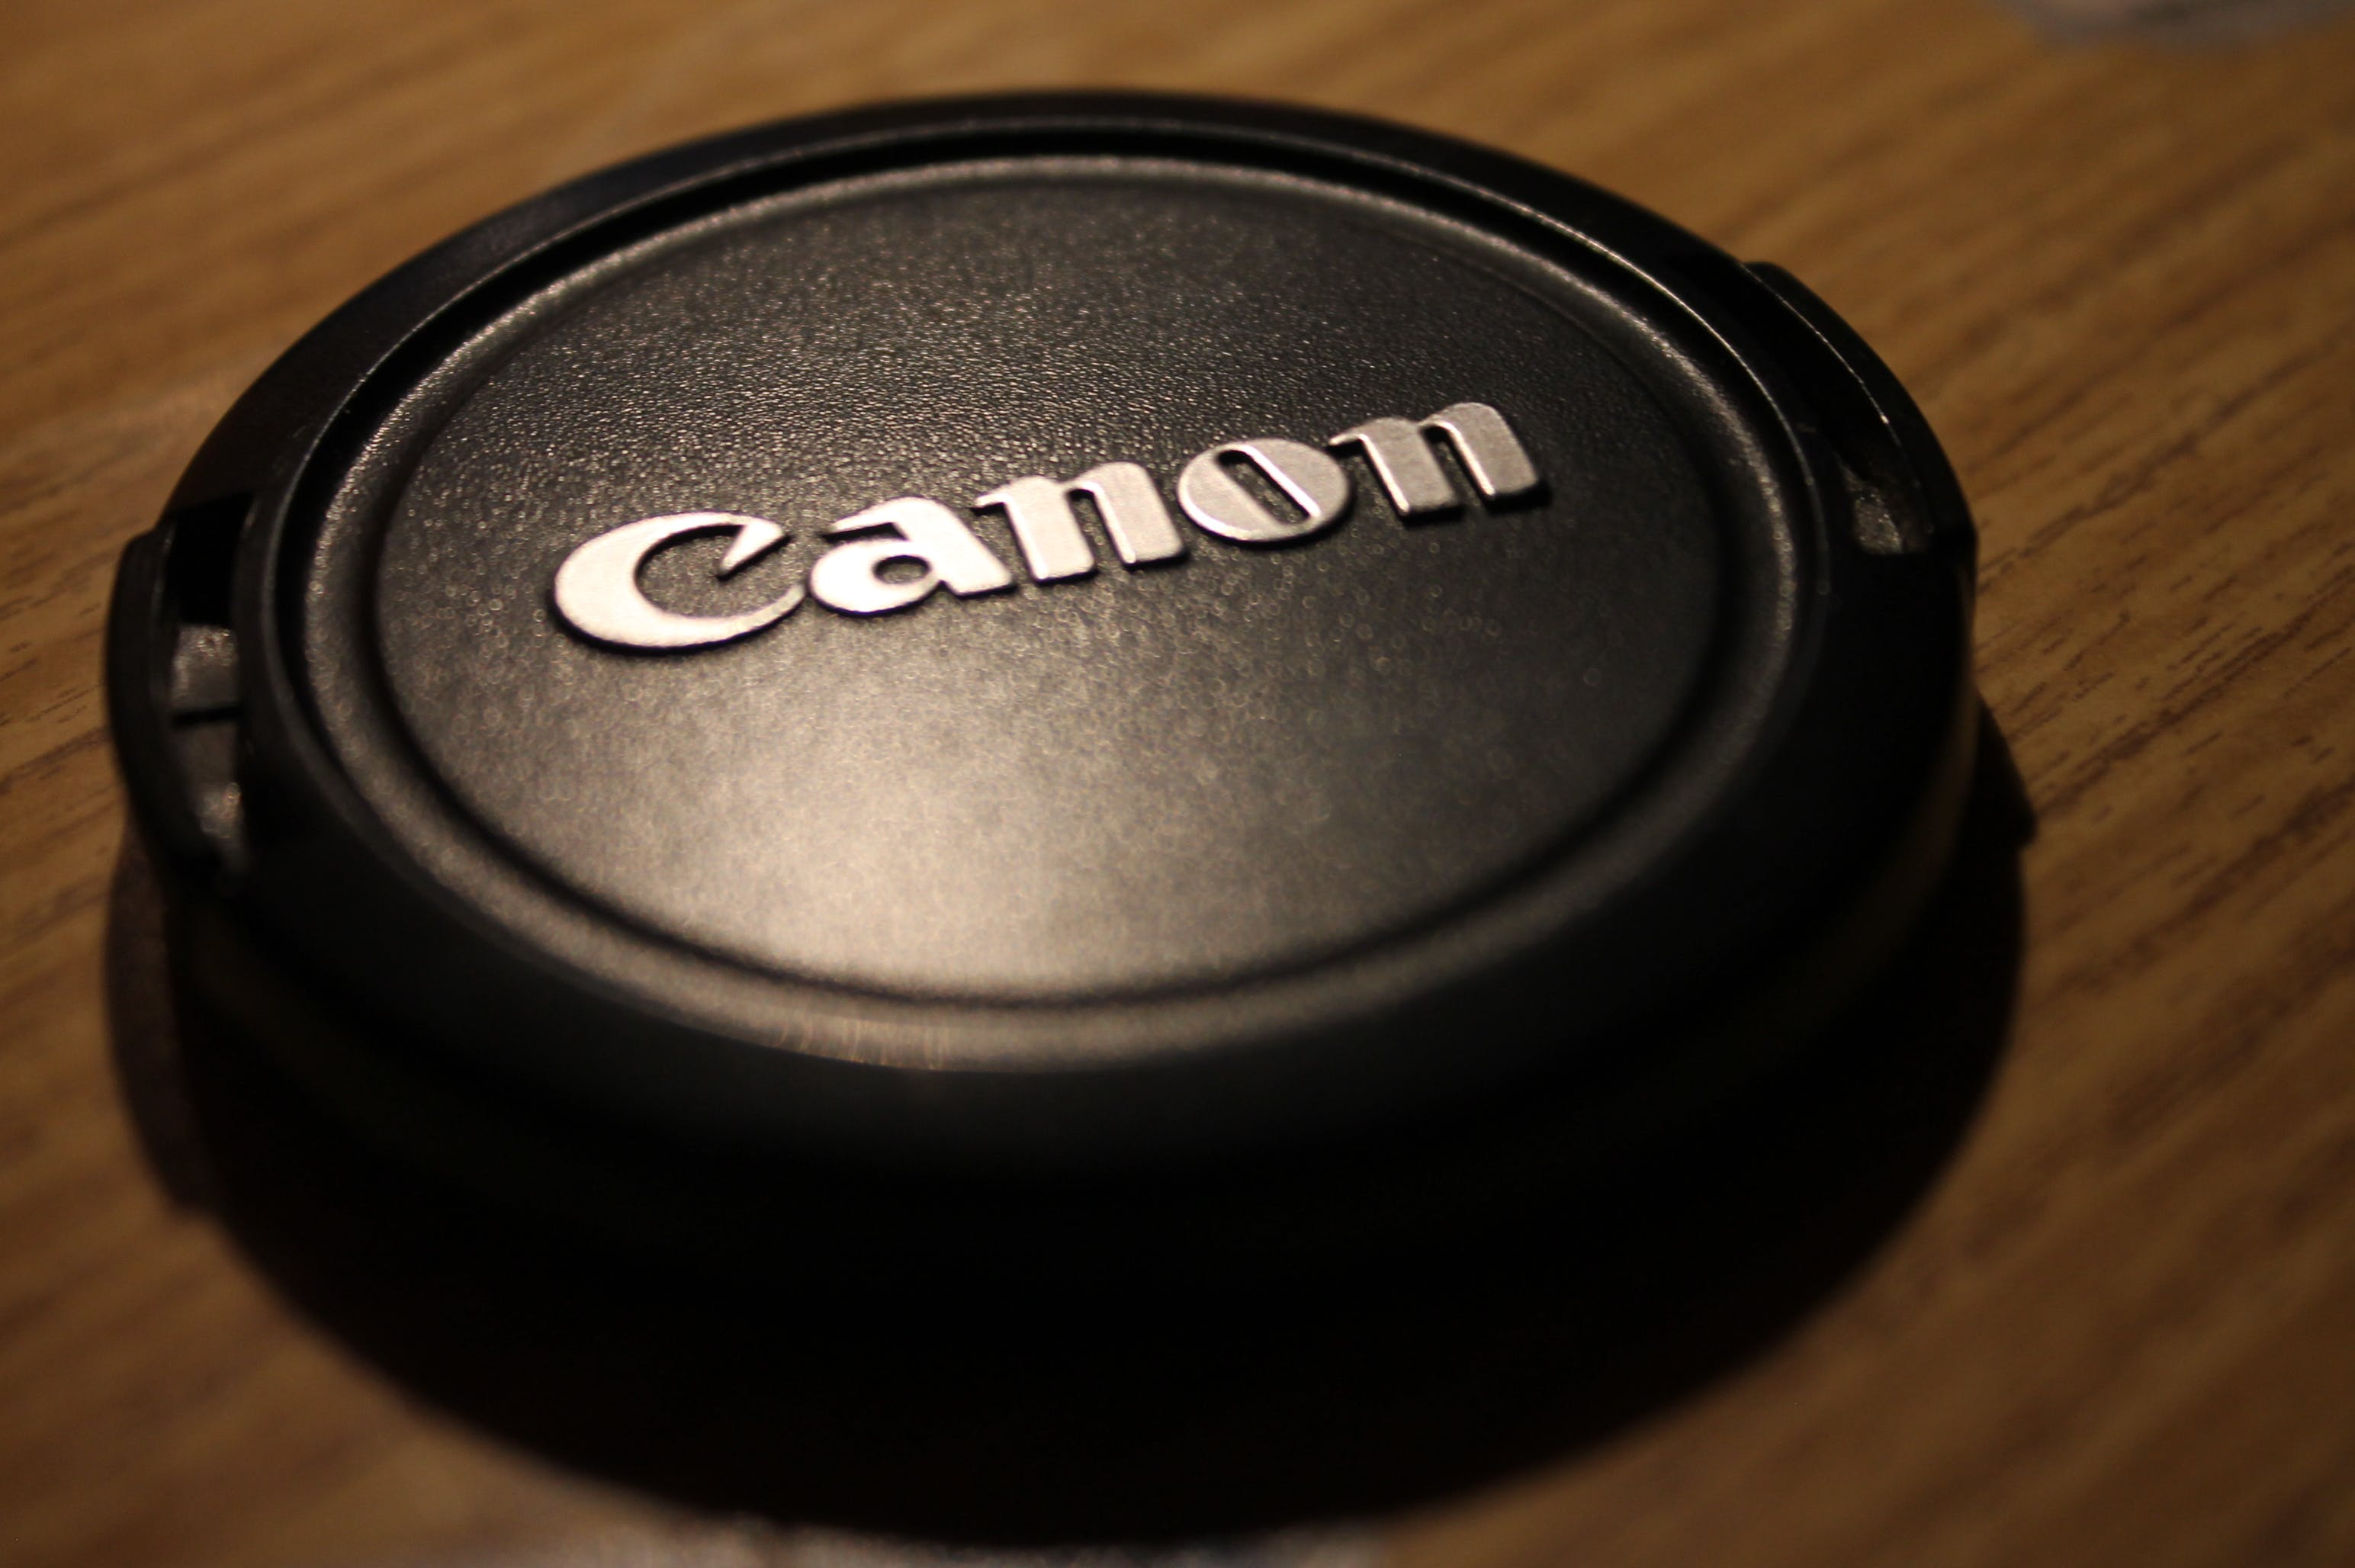 Black Canon Camera Lens Cover